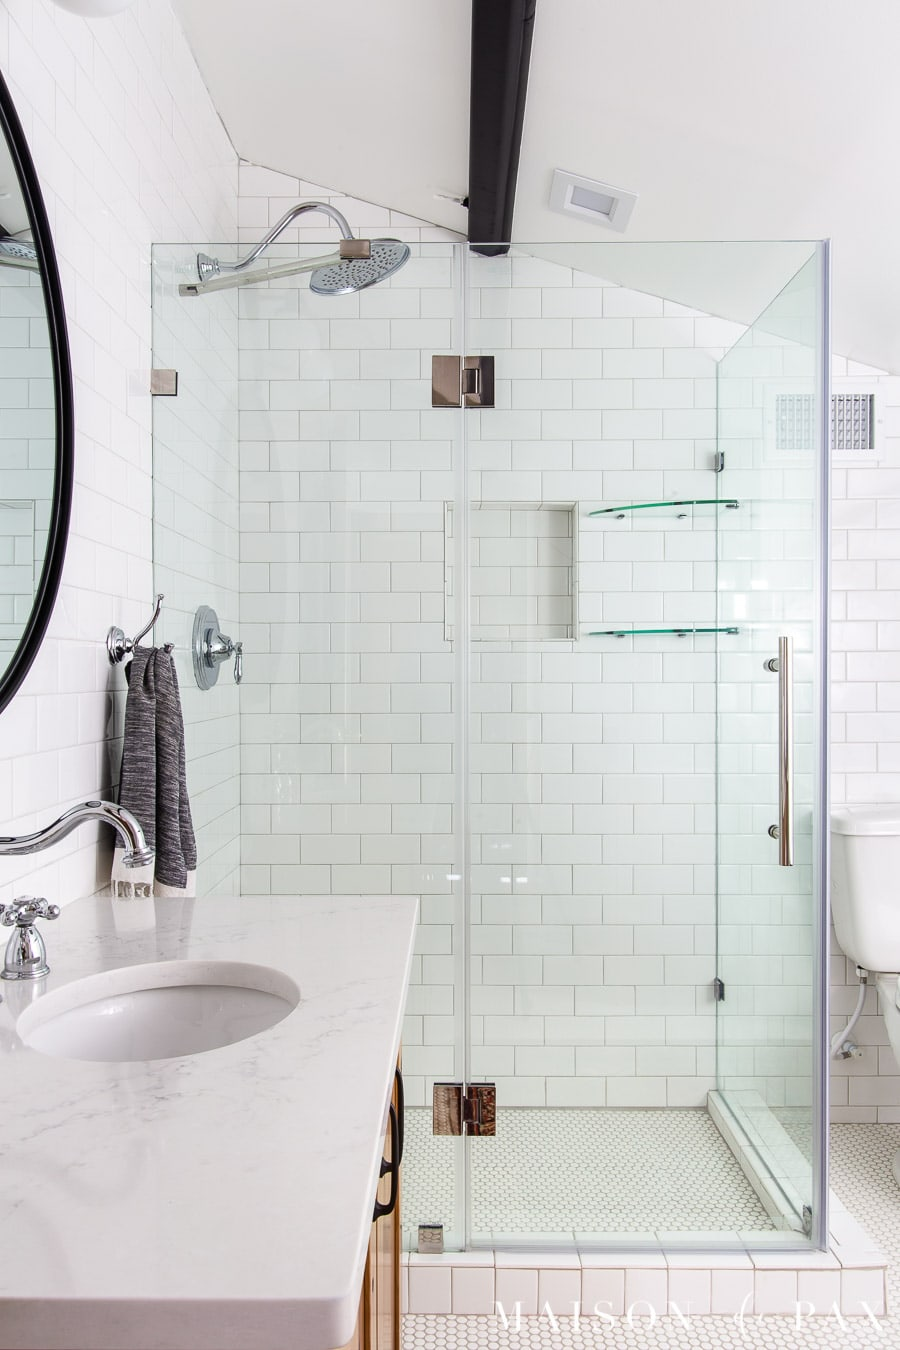 frameless shower door for white tile shower with white quartz countertops | Maison de Pax